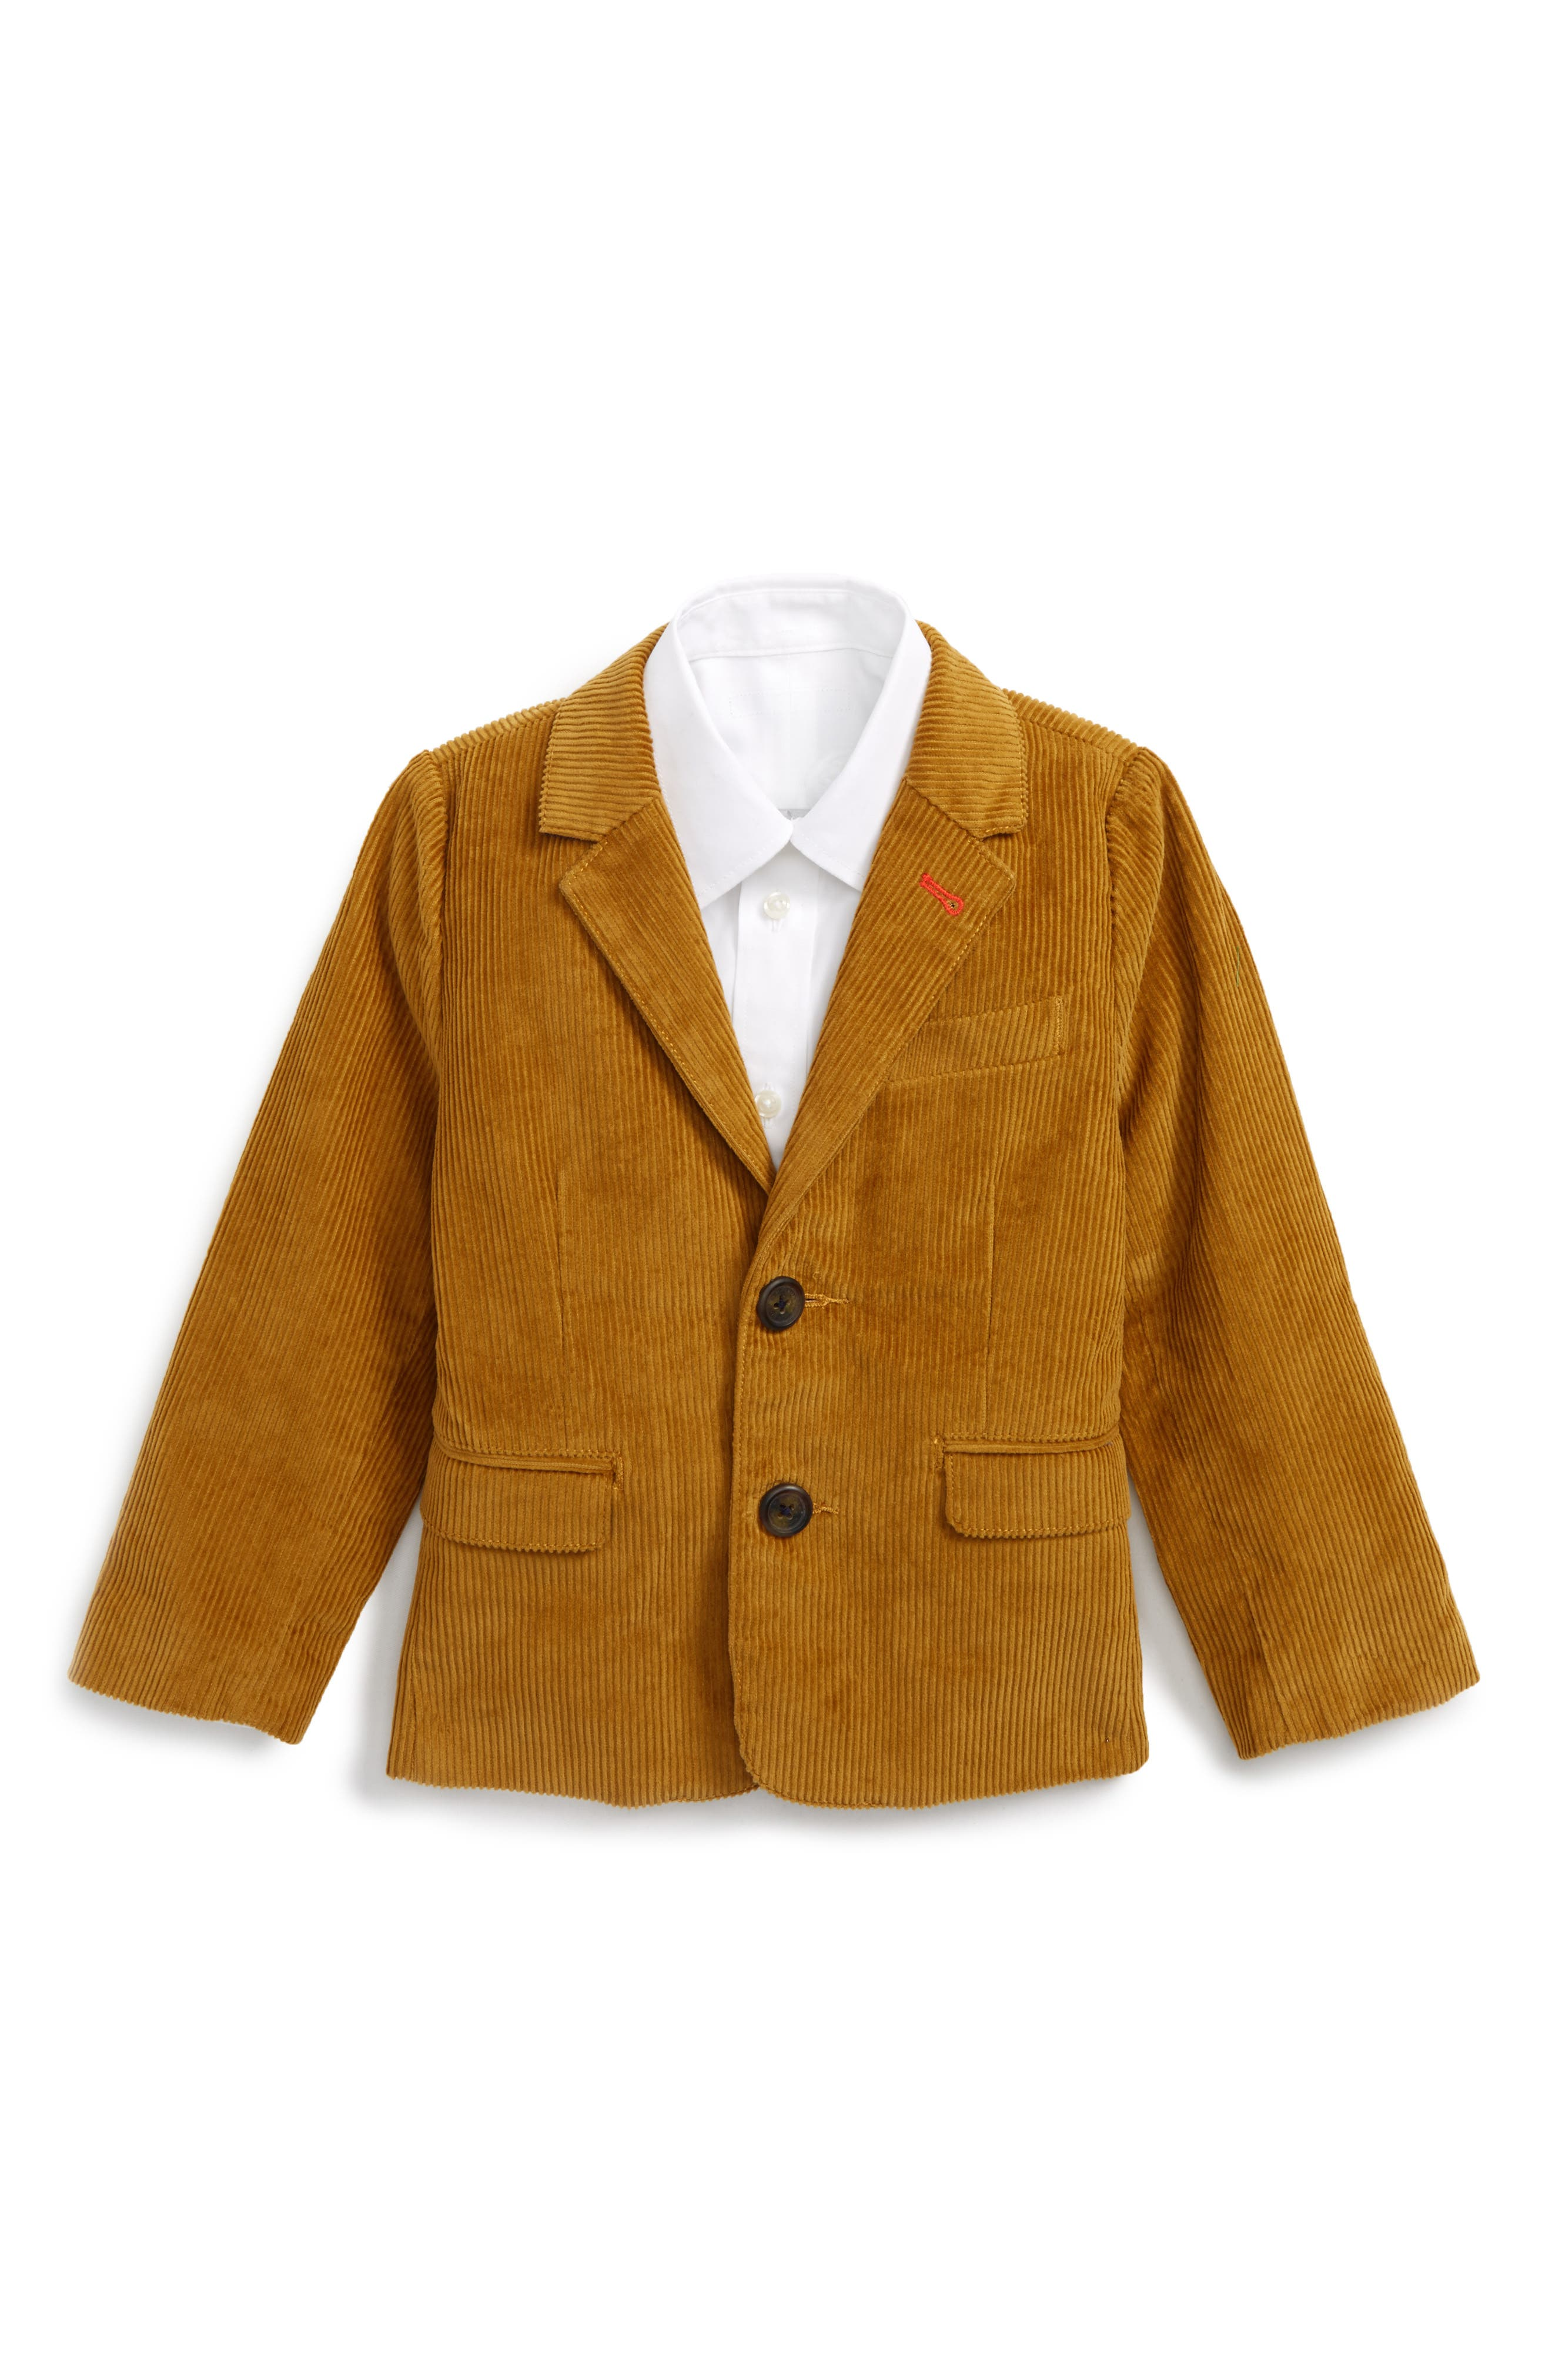 Mini Boden Corduroy Blazer (Toddler Boys, Little Boys & Big Boys)